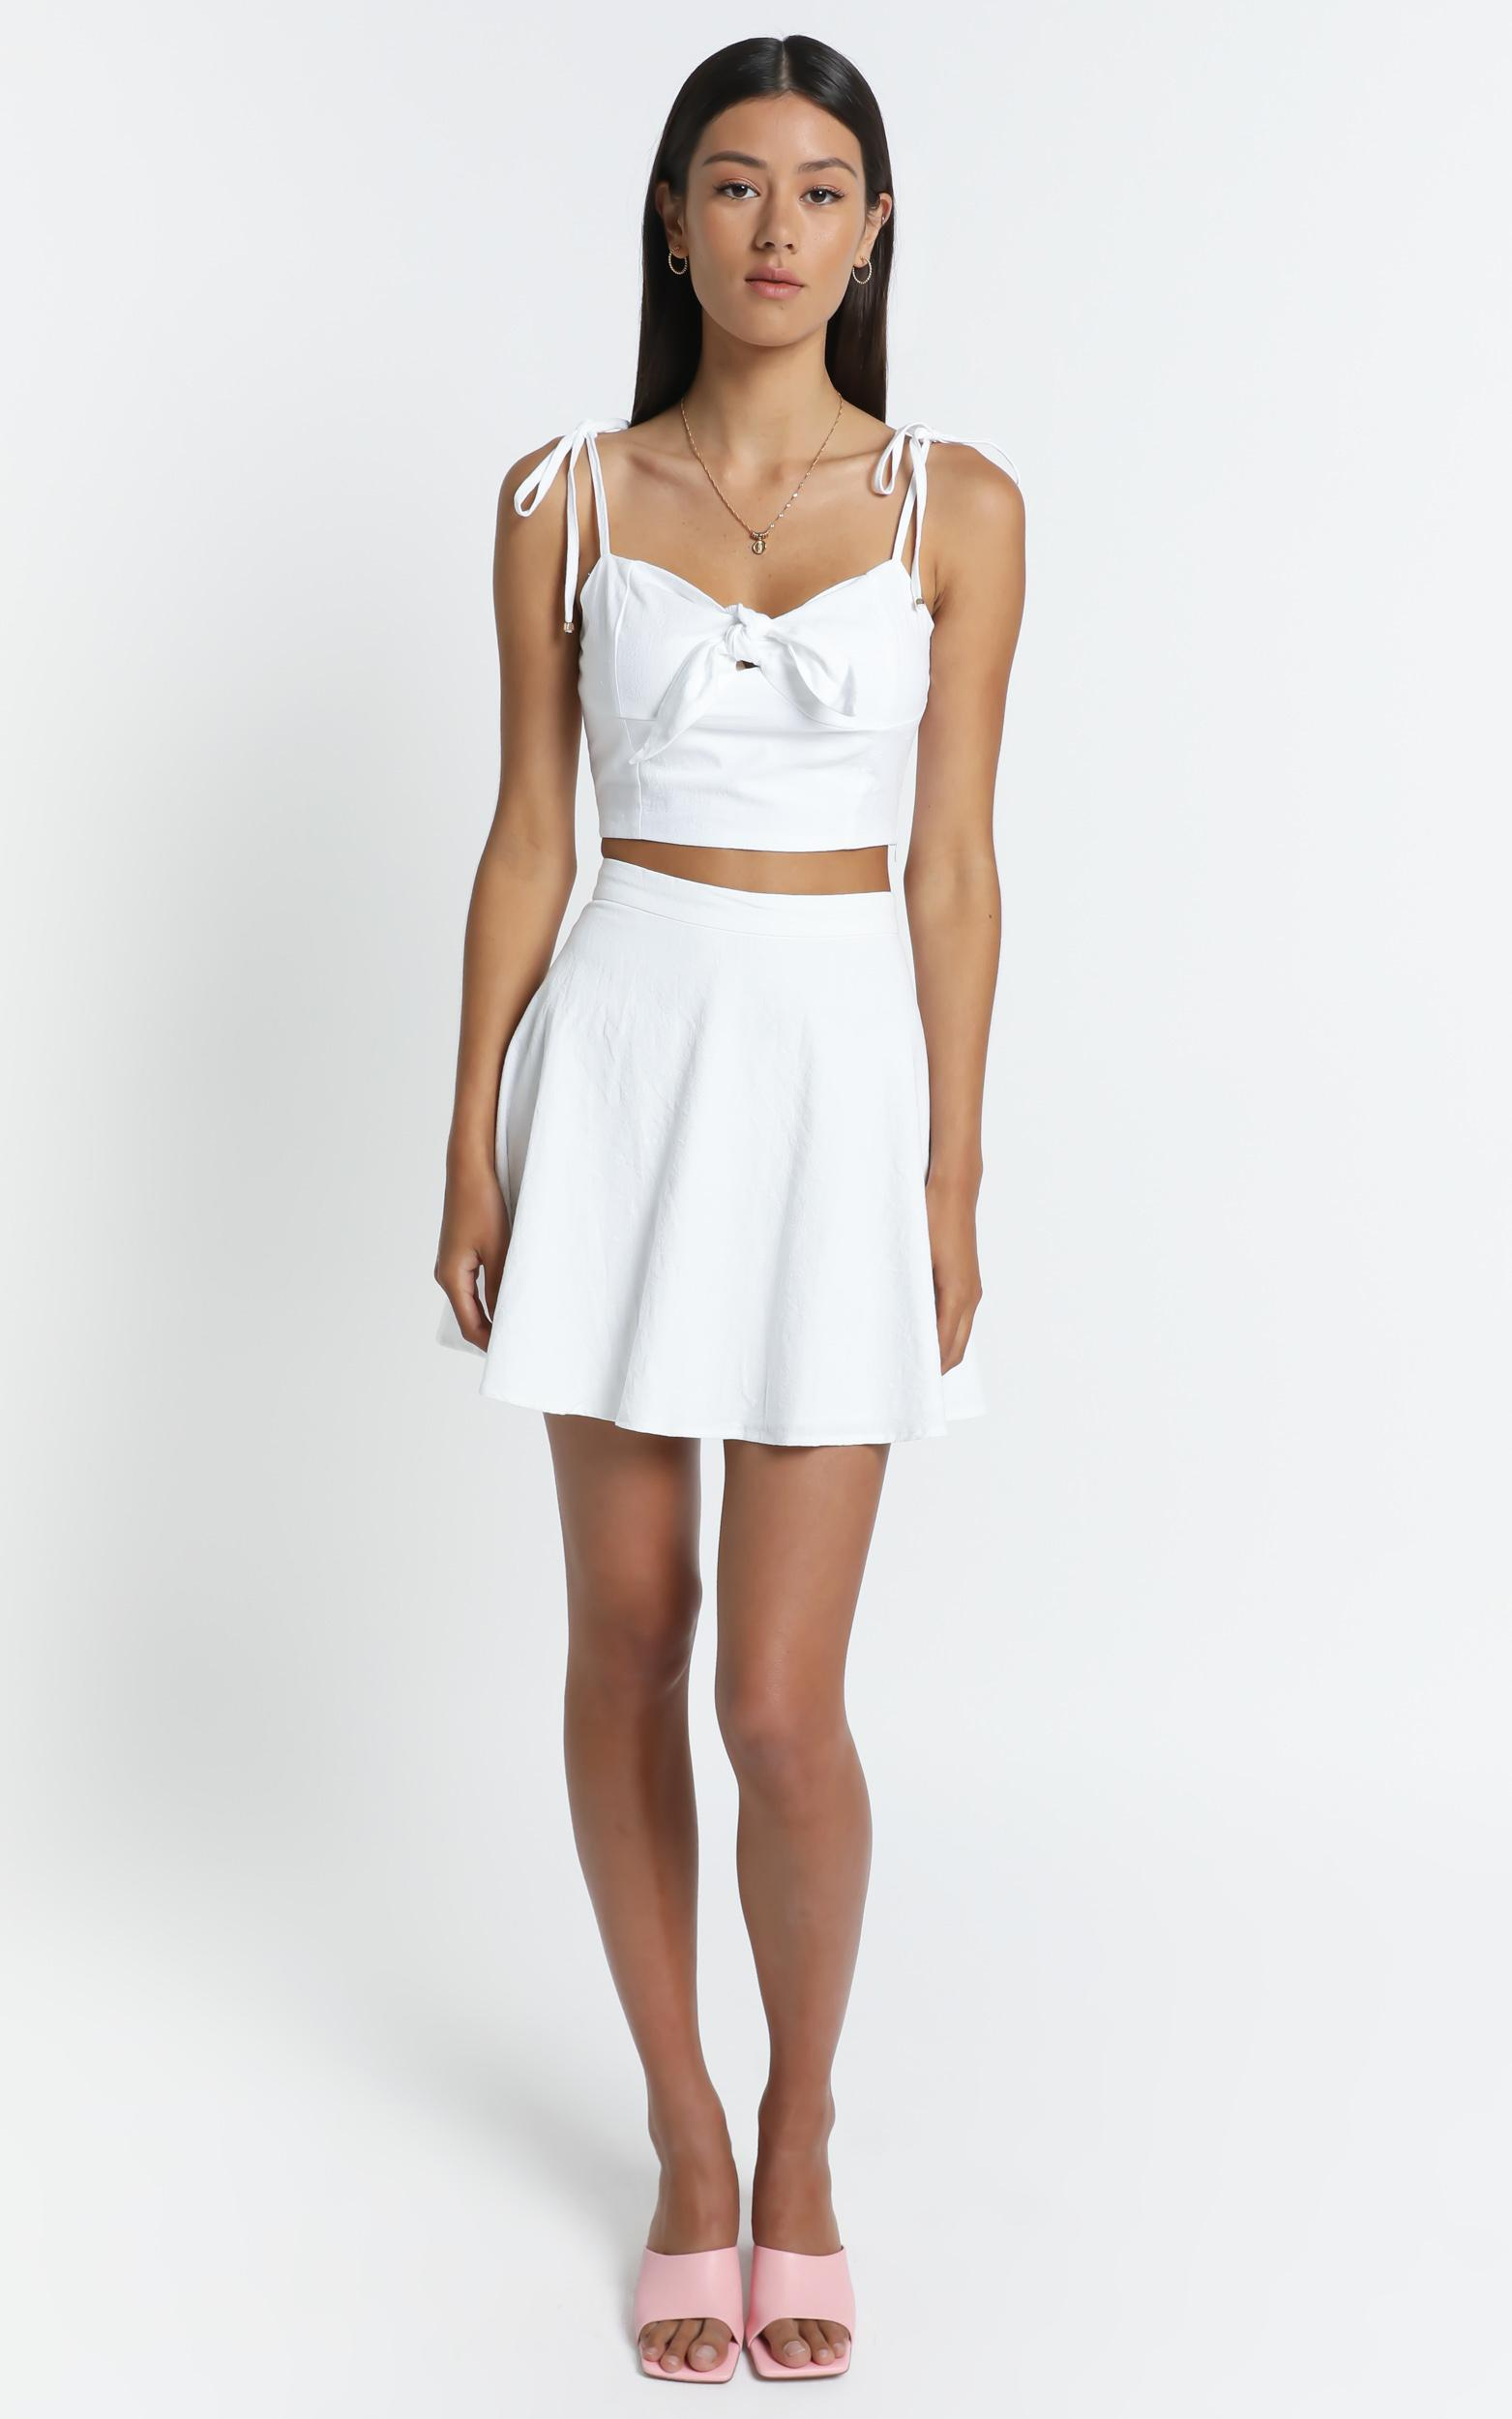 Pei Skirt in White - 6 (XS), White, hi-res image number null